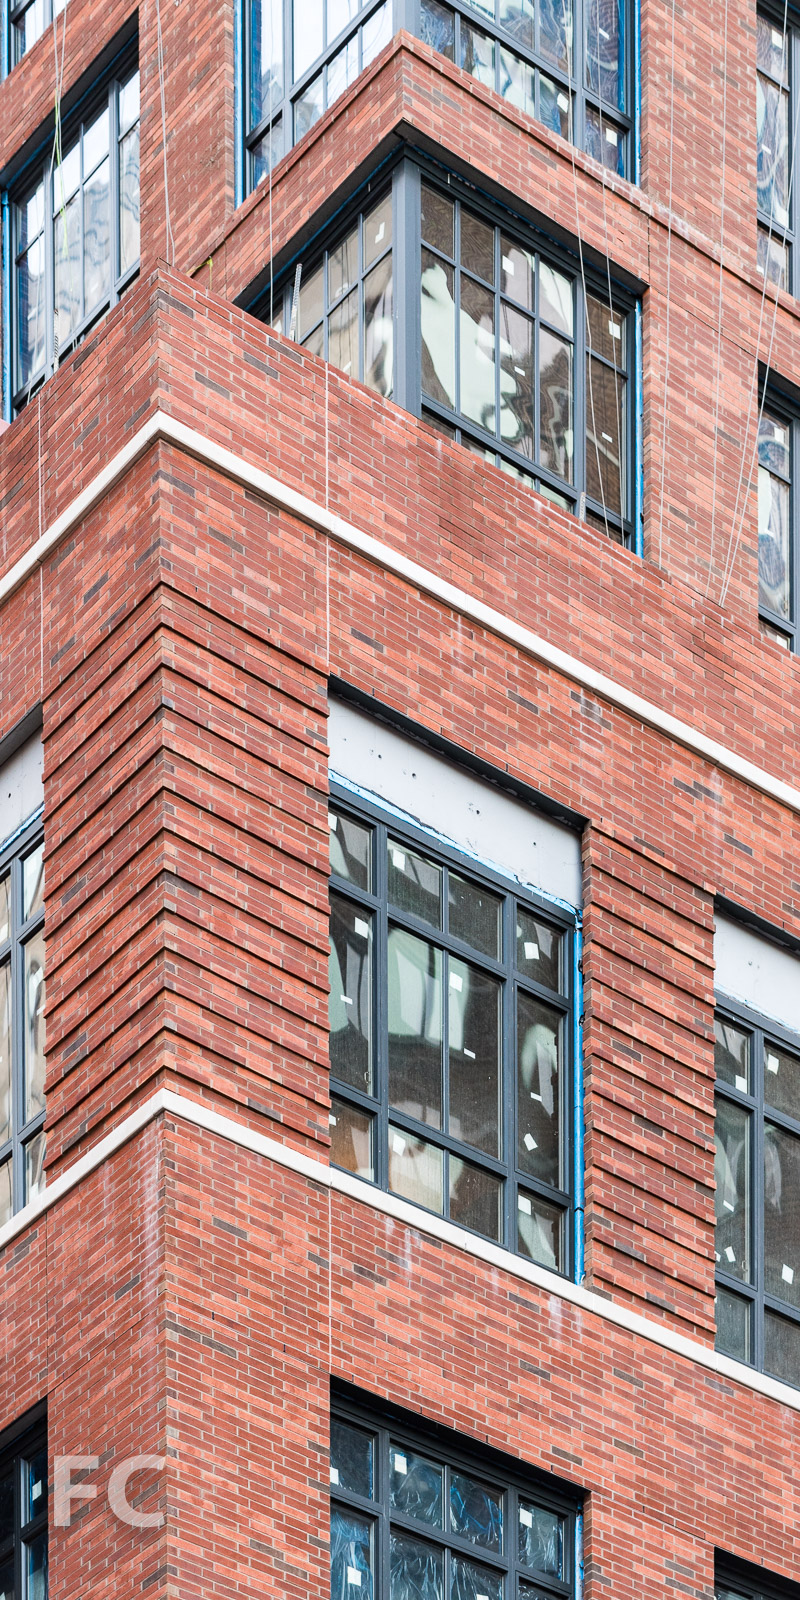 Close-up of the brick and glass facade at the northwest corner.